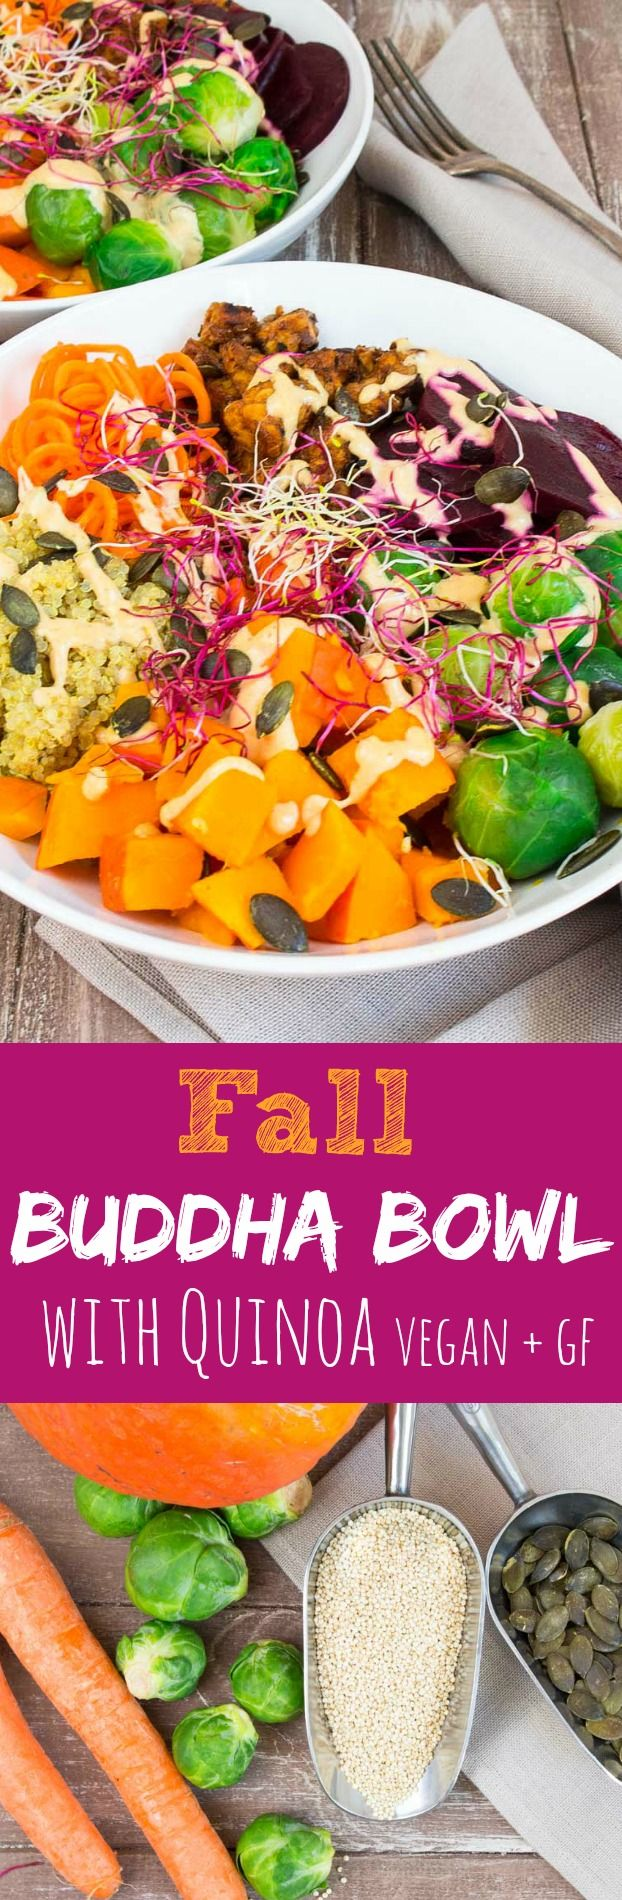 This fall buddha bowl with quinoa and pumpkin is comforting, super healthy, packed with flavor, gluten free, and vegan!